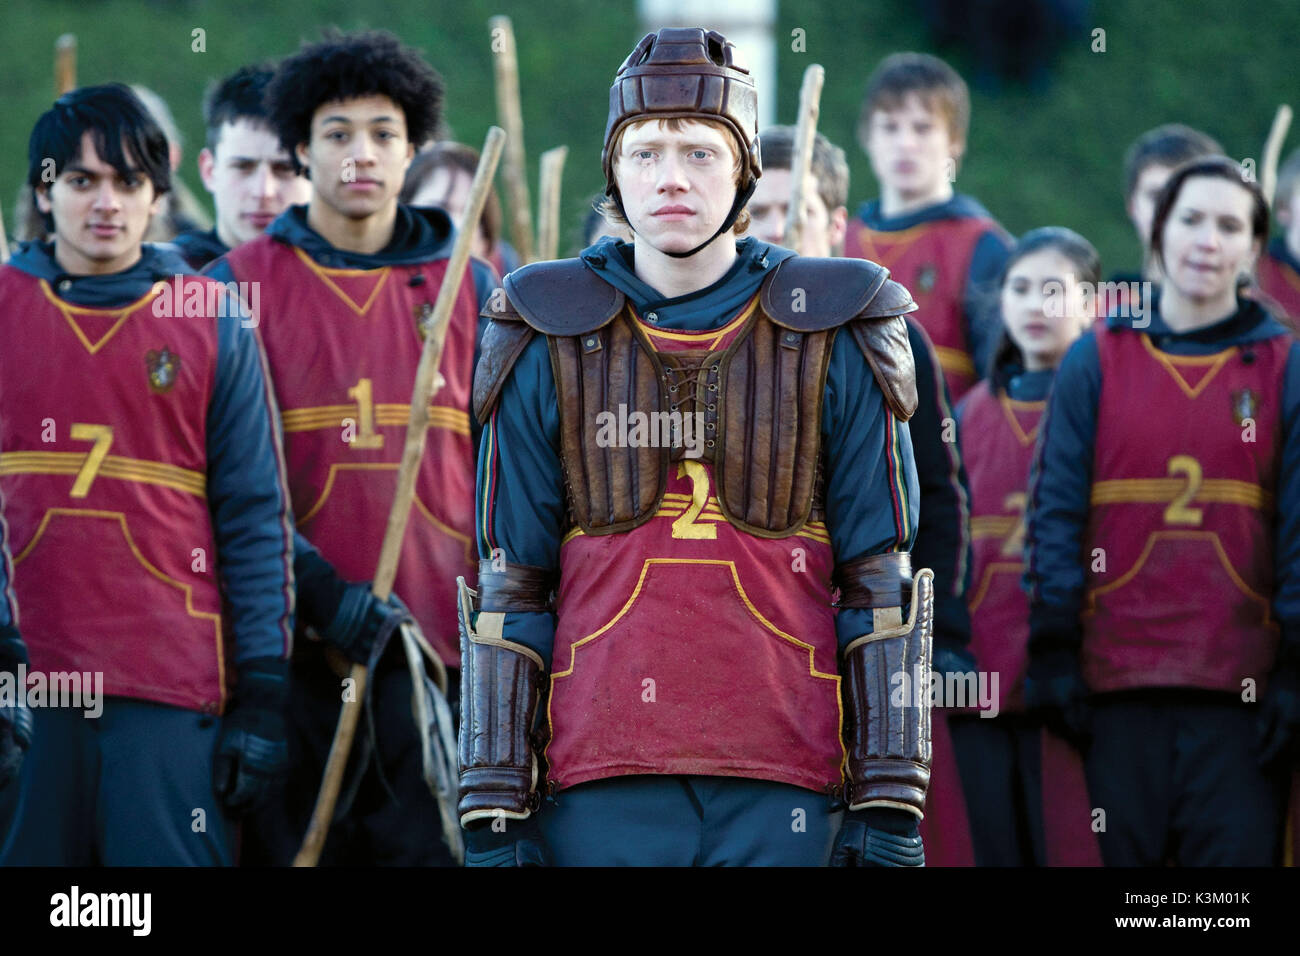 HARRY POTTER AND THE HALF BLOOD PRINCE RUPERT GRINT as Ron Weasley        Date: 2009 - Stock Image